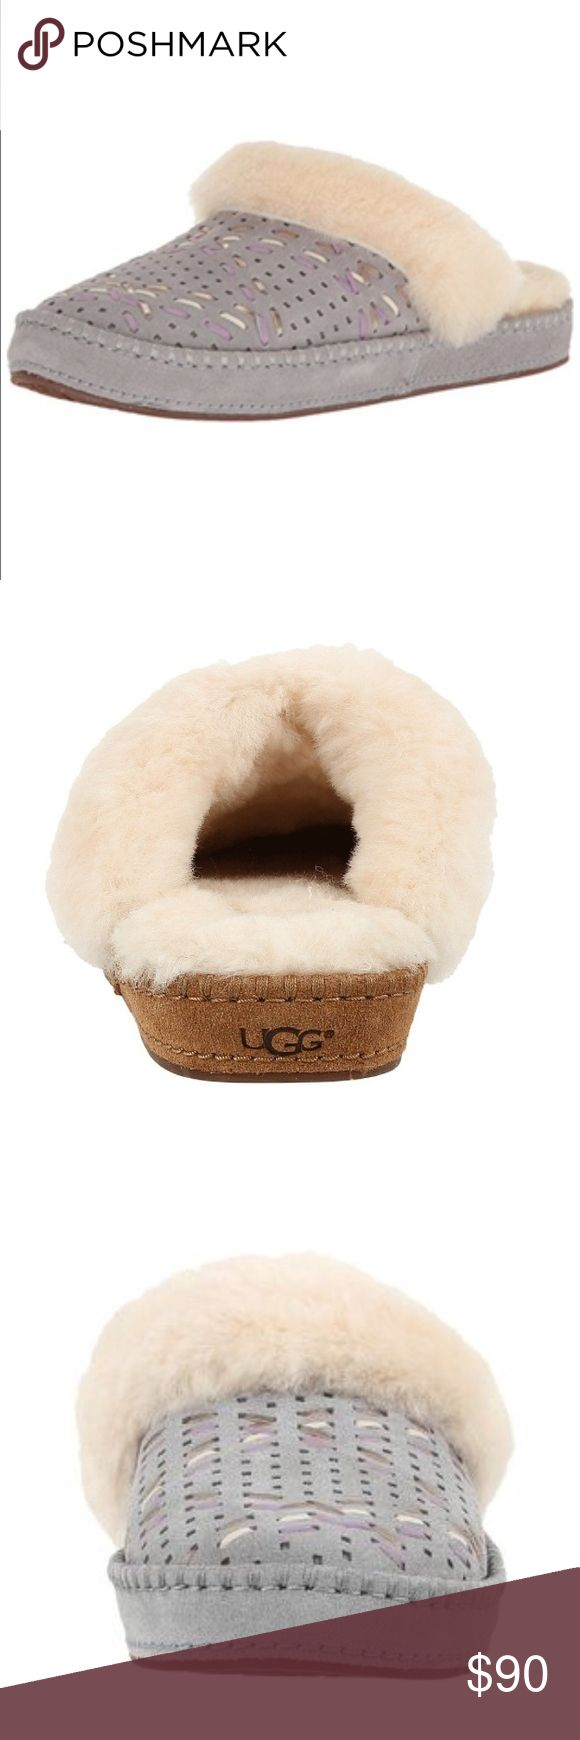 UGG Aira Pencil Lead Grey Pink Sheepskin Slippers New with box! Fully Sheepskin lined. 100% authentic 🌈 UGG Shoes Slippers